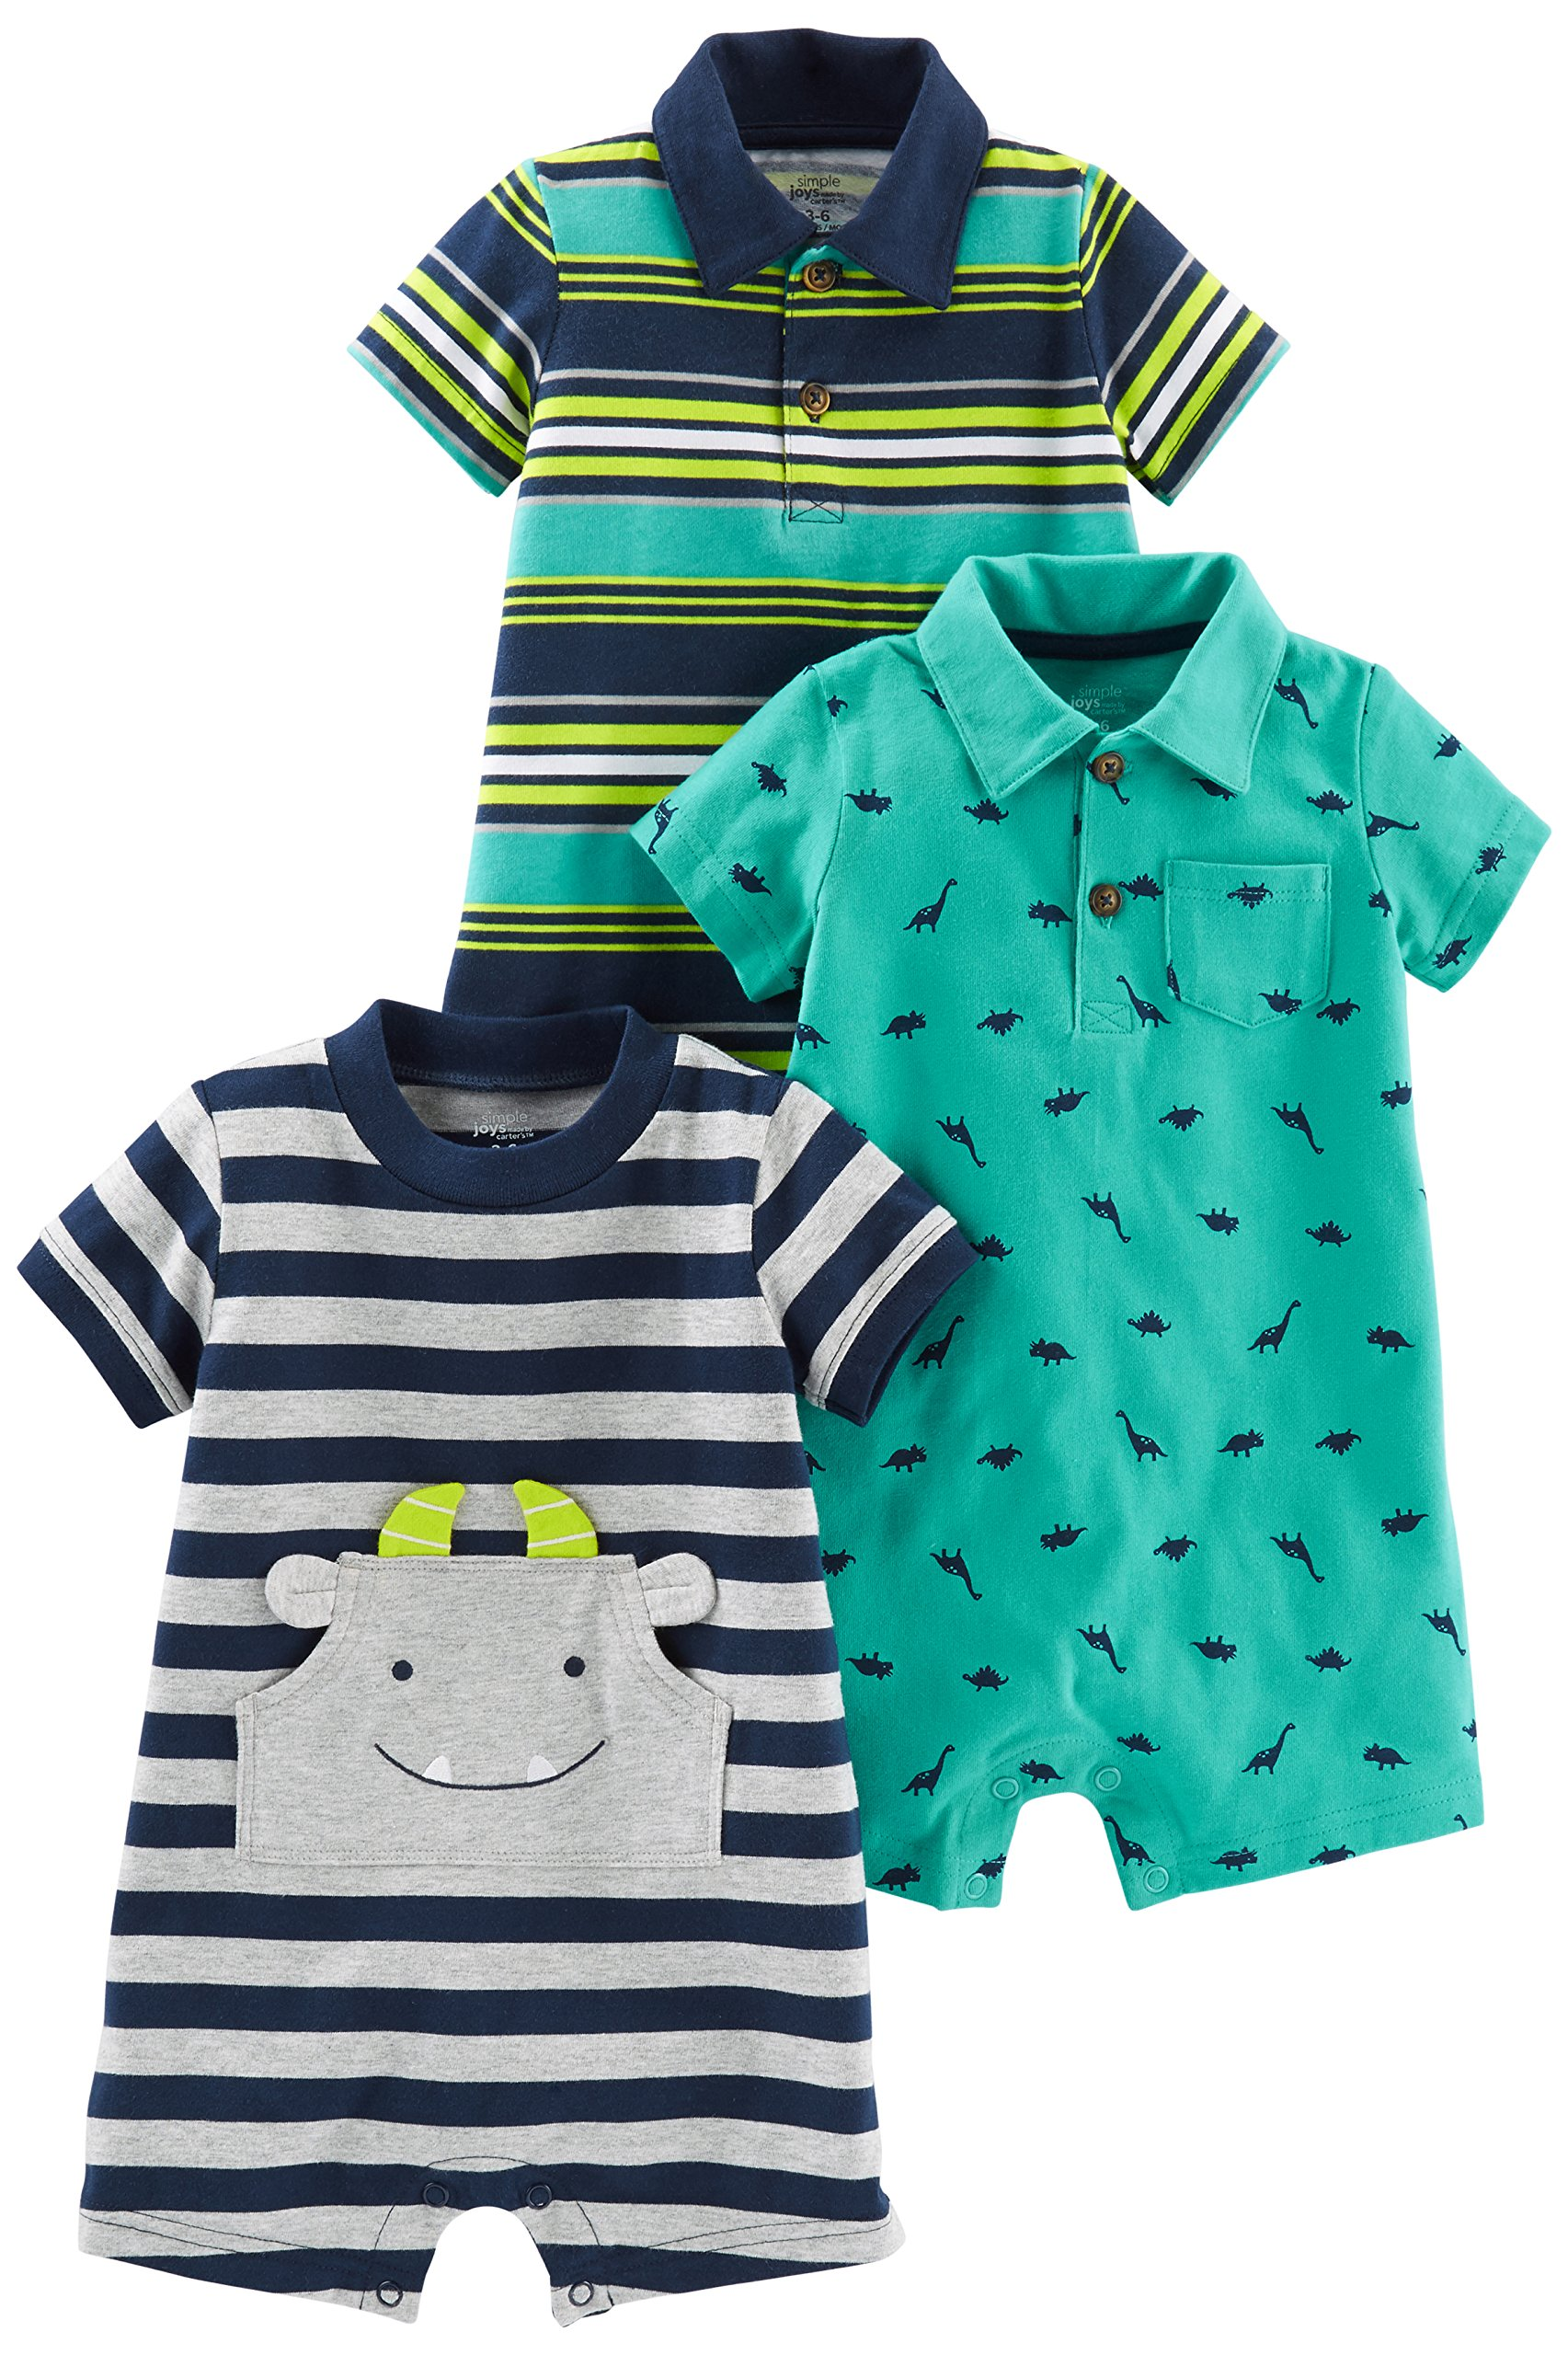 Simple Joys by Carter's Baby Boys' 3-Pack Rompers, Blue Stripe/Turquoise Dino/Grey Navy, 6-9 Months by Simple Joys by Carter's